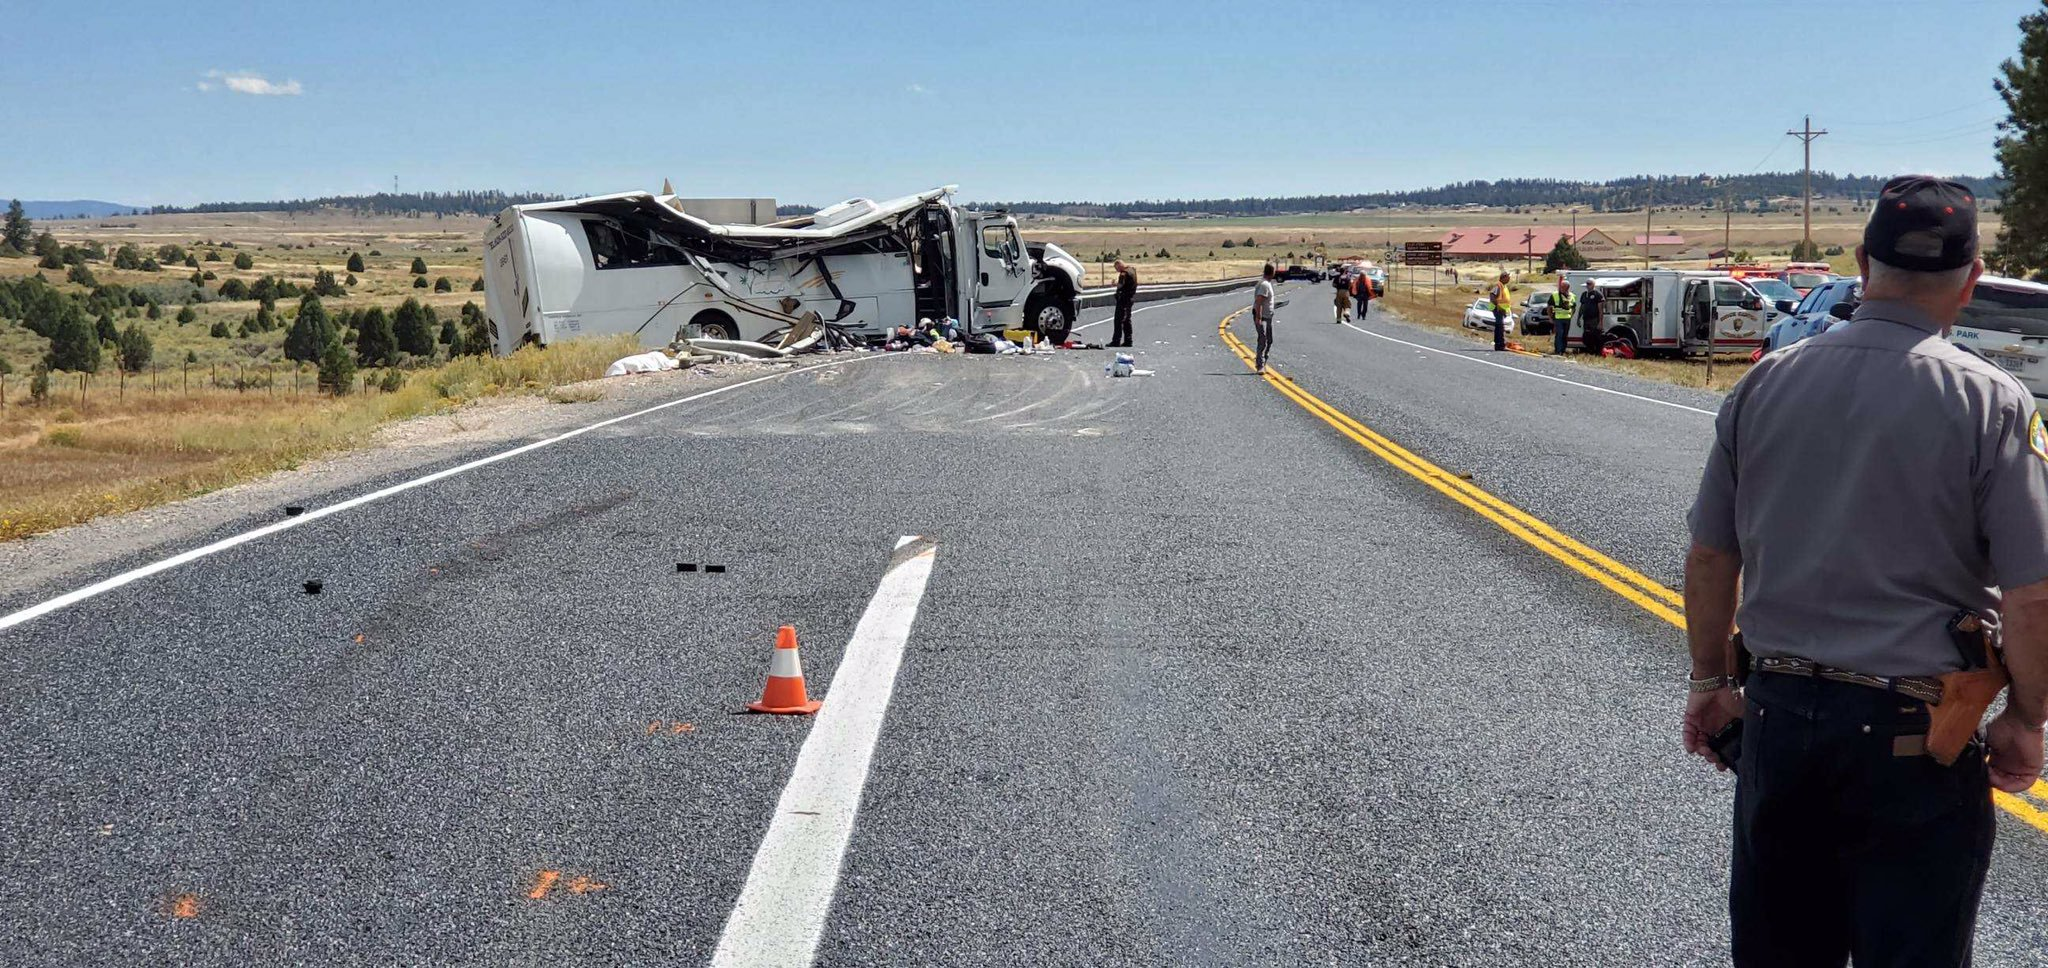 A tour bus crash is shown outside Bryce Canyon National Park on Sept. 20, 2019, in a photo tweeted by the Utah Highway Patrol.